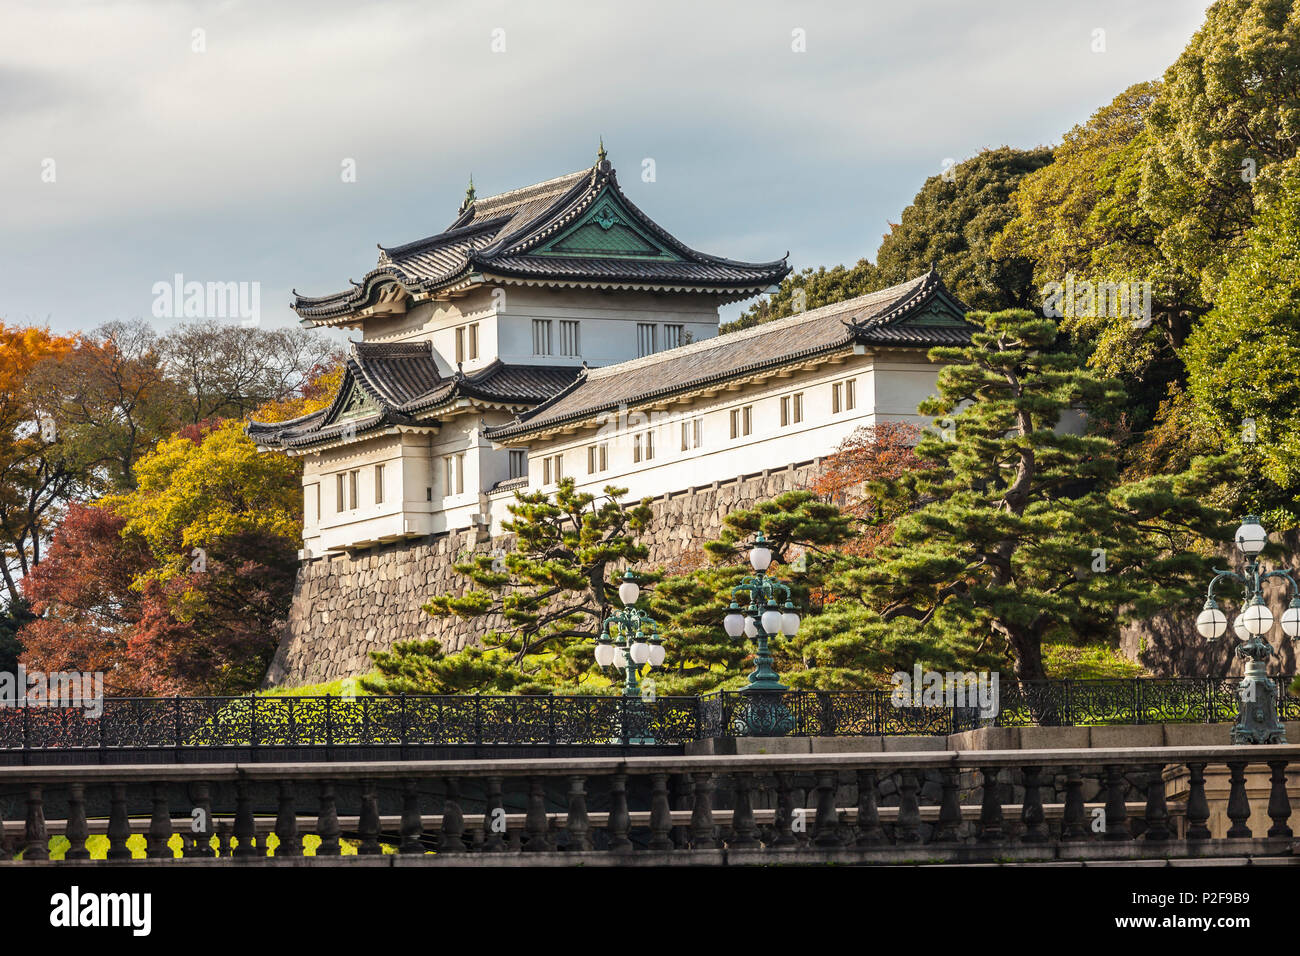 Fushimi-Yagura just behind the Nijubashi Bridge of Imperial Palace, Chiyoda-ku, Tokyo, Japan - Stock Image